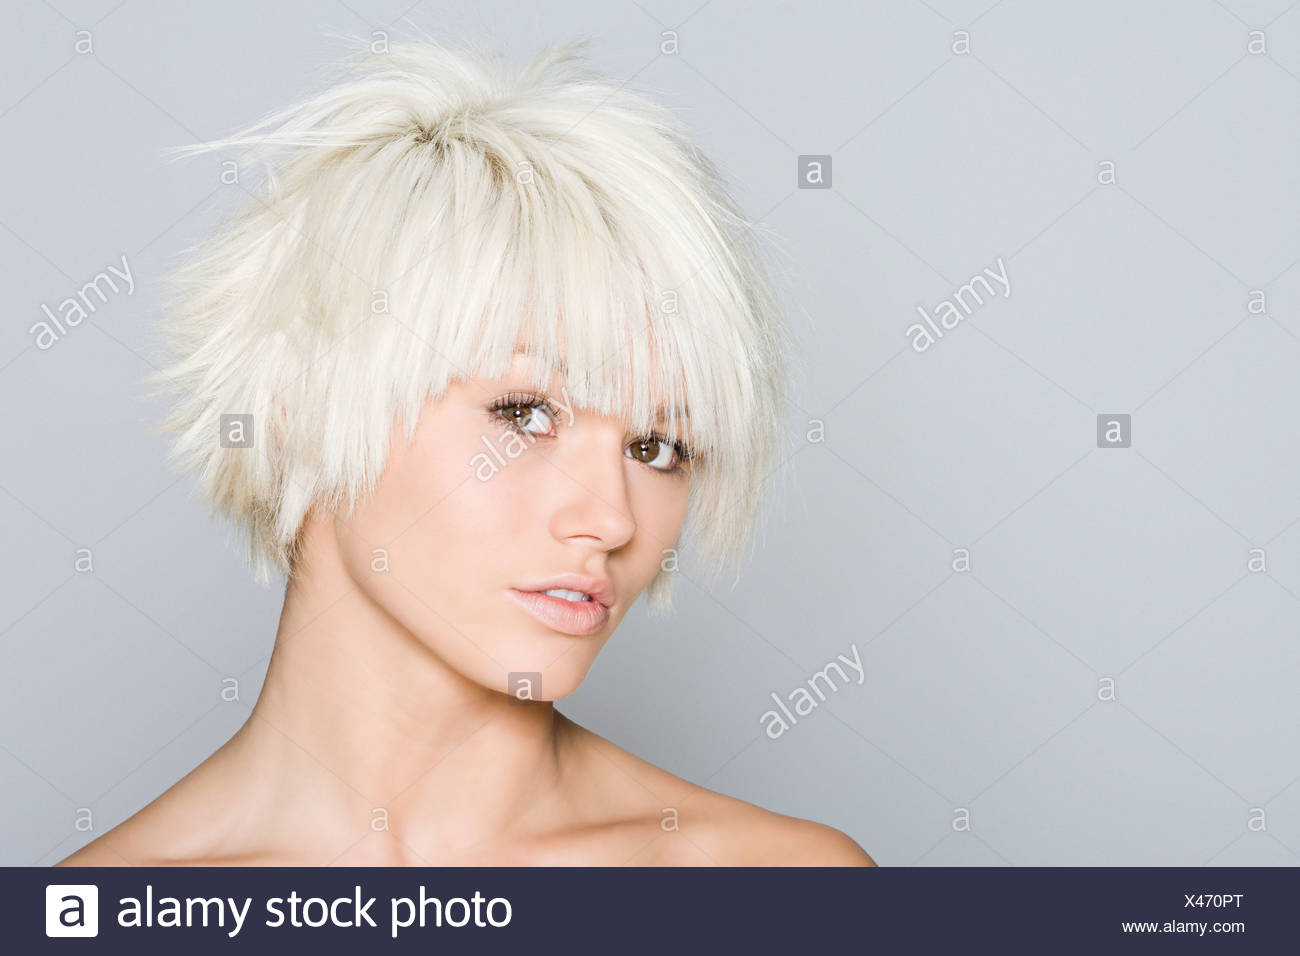 Portrait of a woman with blonde hair - Stock Image